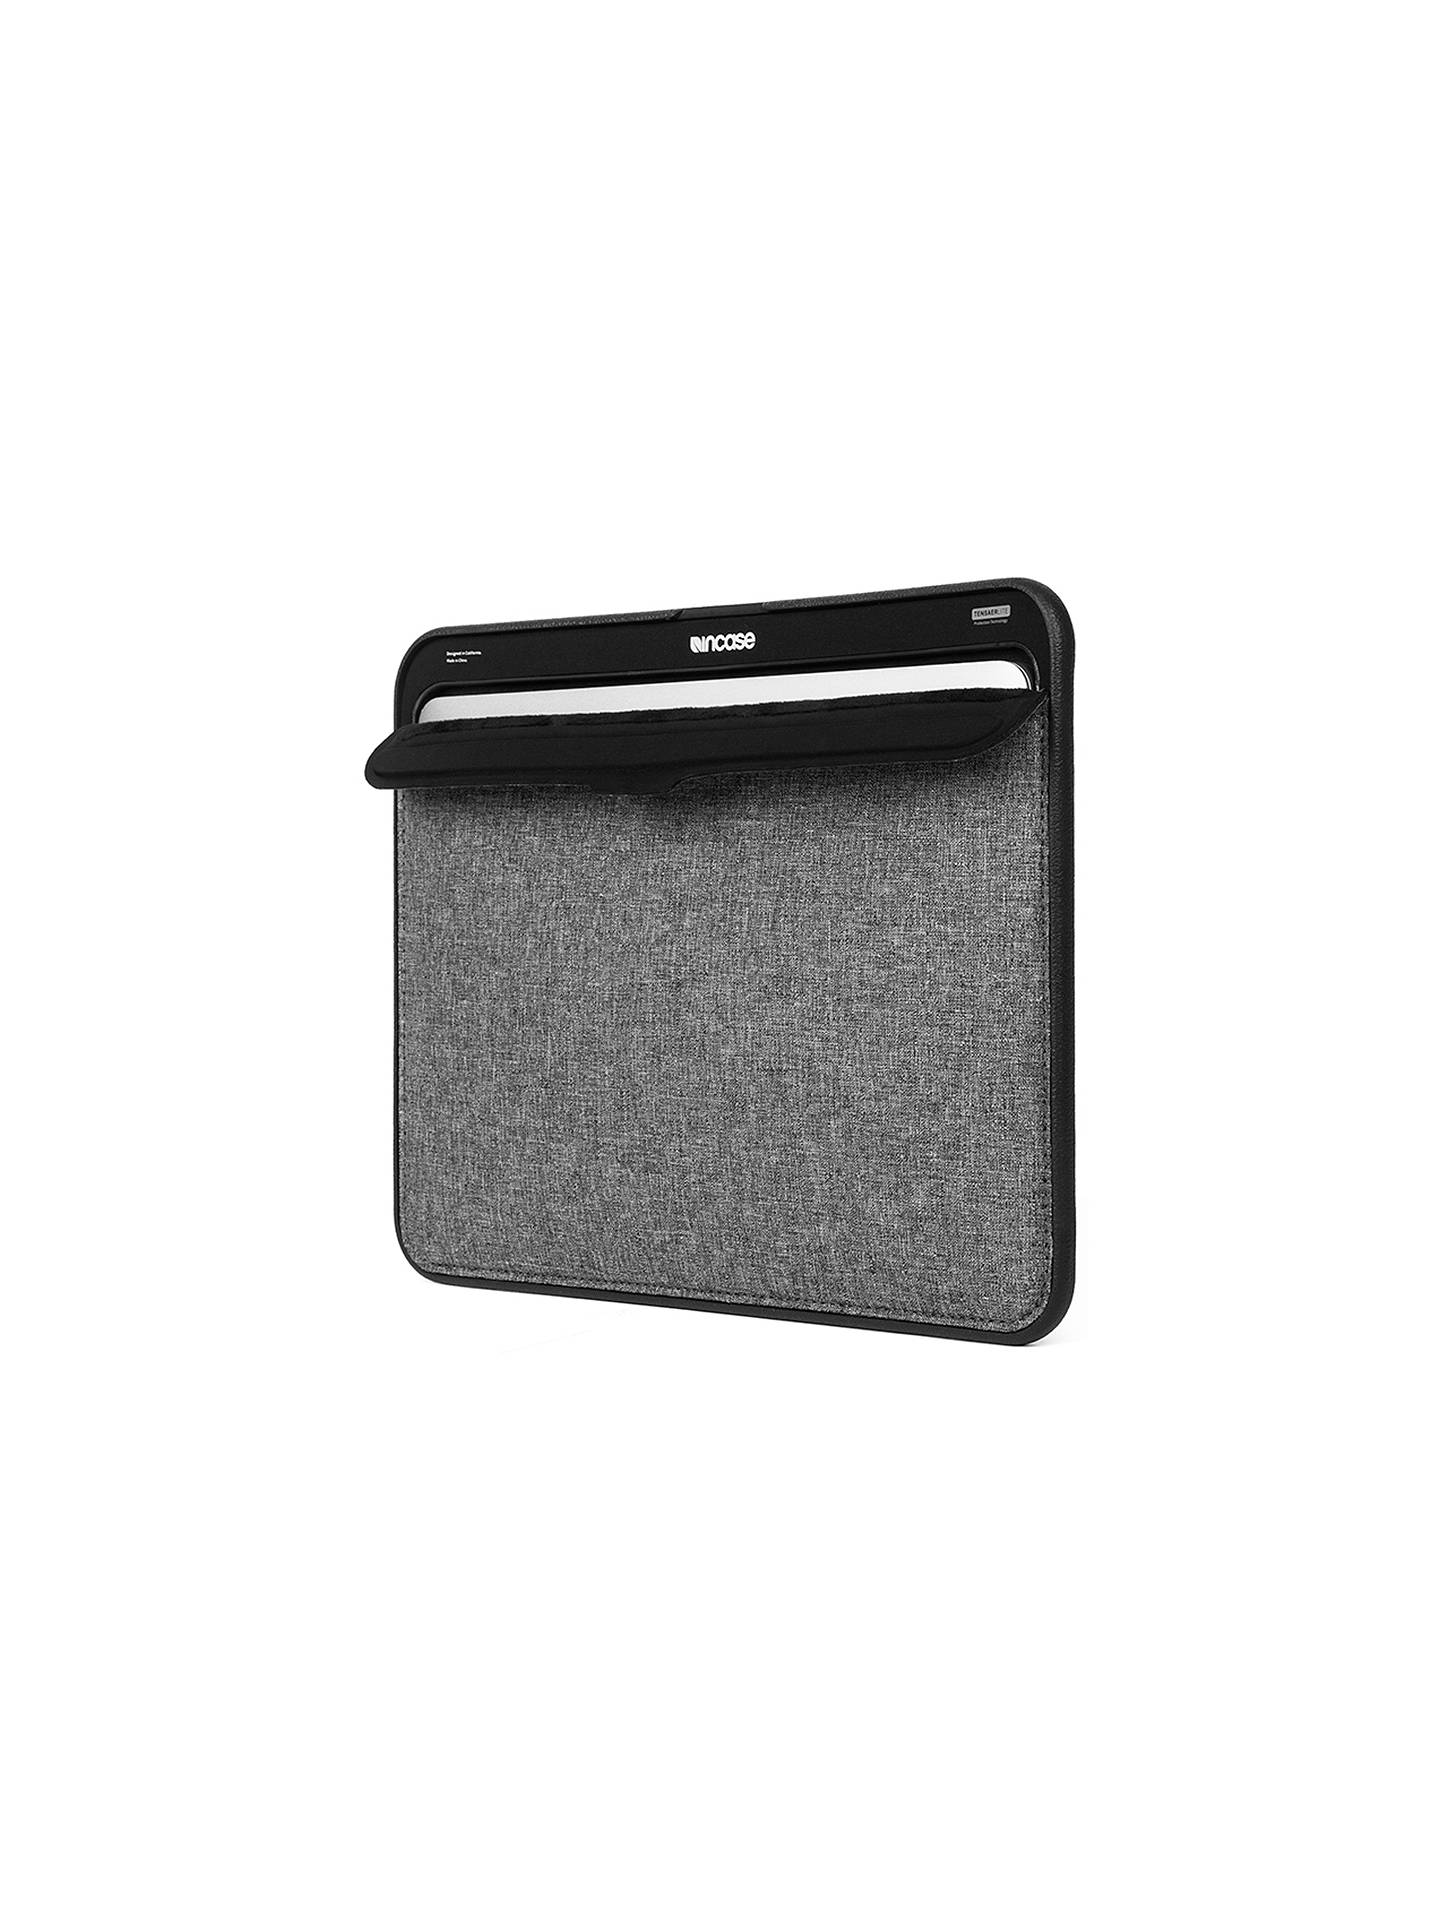 80be9ad364 ... Buy Incase ICON Sleeve for MacBook Pro/Pro Retina/Pro TouchBar 13